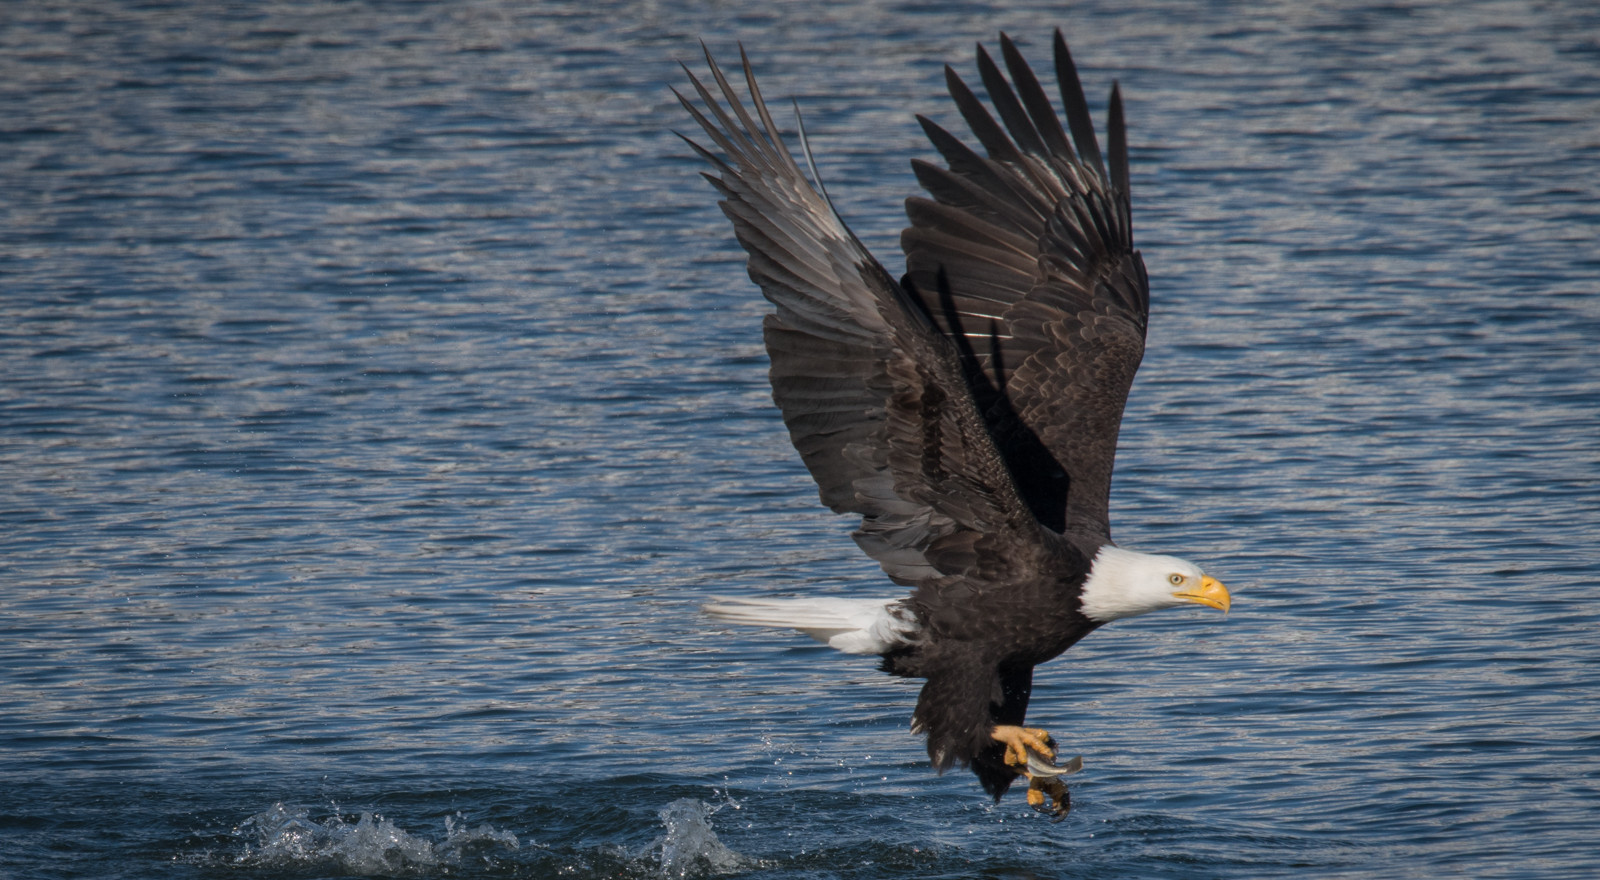 After catching the fish, the eagle begins to rise up from the river with the fish in one talon. As I recall, he/she took the fish to the nest for the meal. The female is much larger than her mate, but without seeing both birds together, I am uncertain which one has caught the fish.